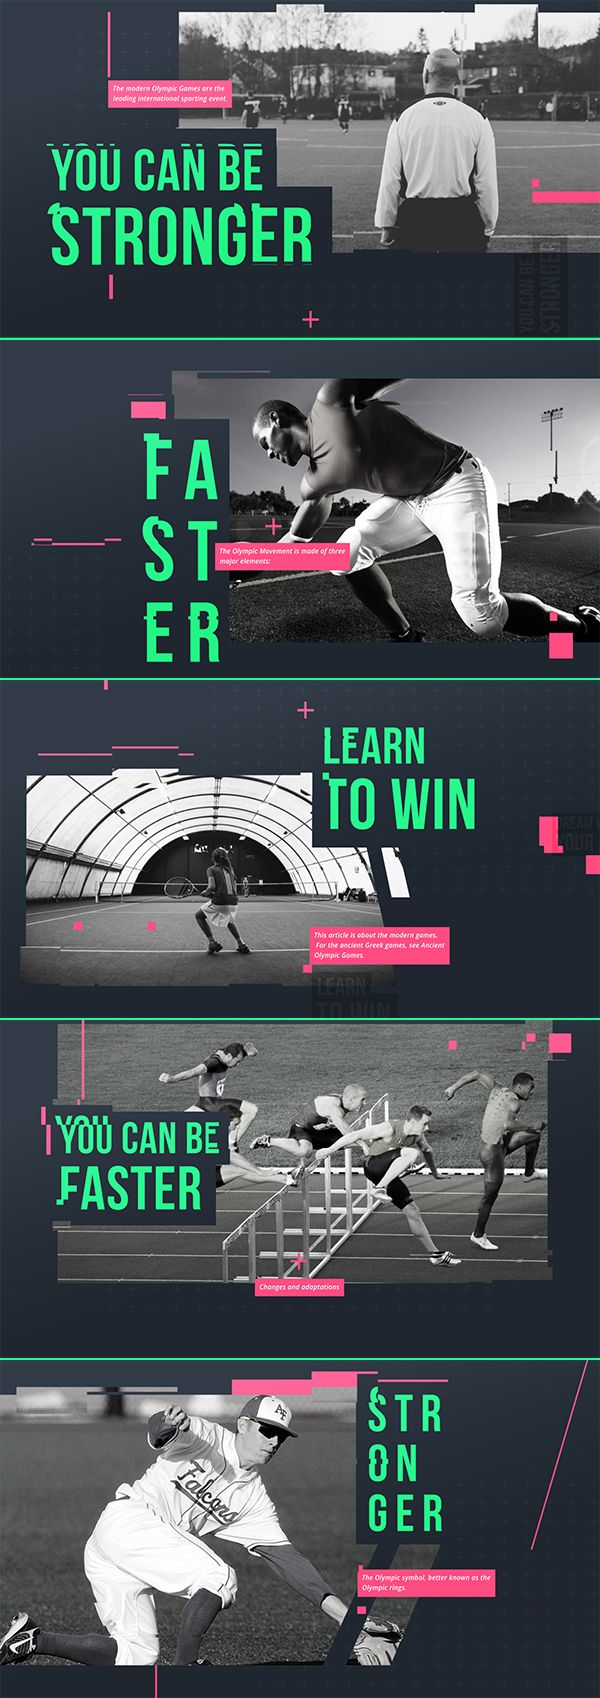 «Motivate Opener» — Stylish and dynamic slide show perfect for your opener, tv show, photo/video slide show, sport, business, or other any special events or any media opener. You can use images or ...